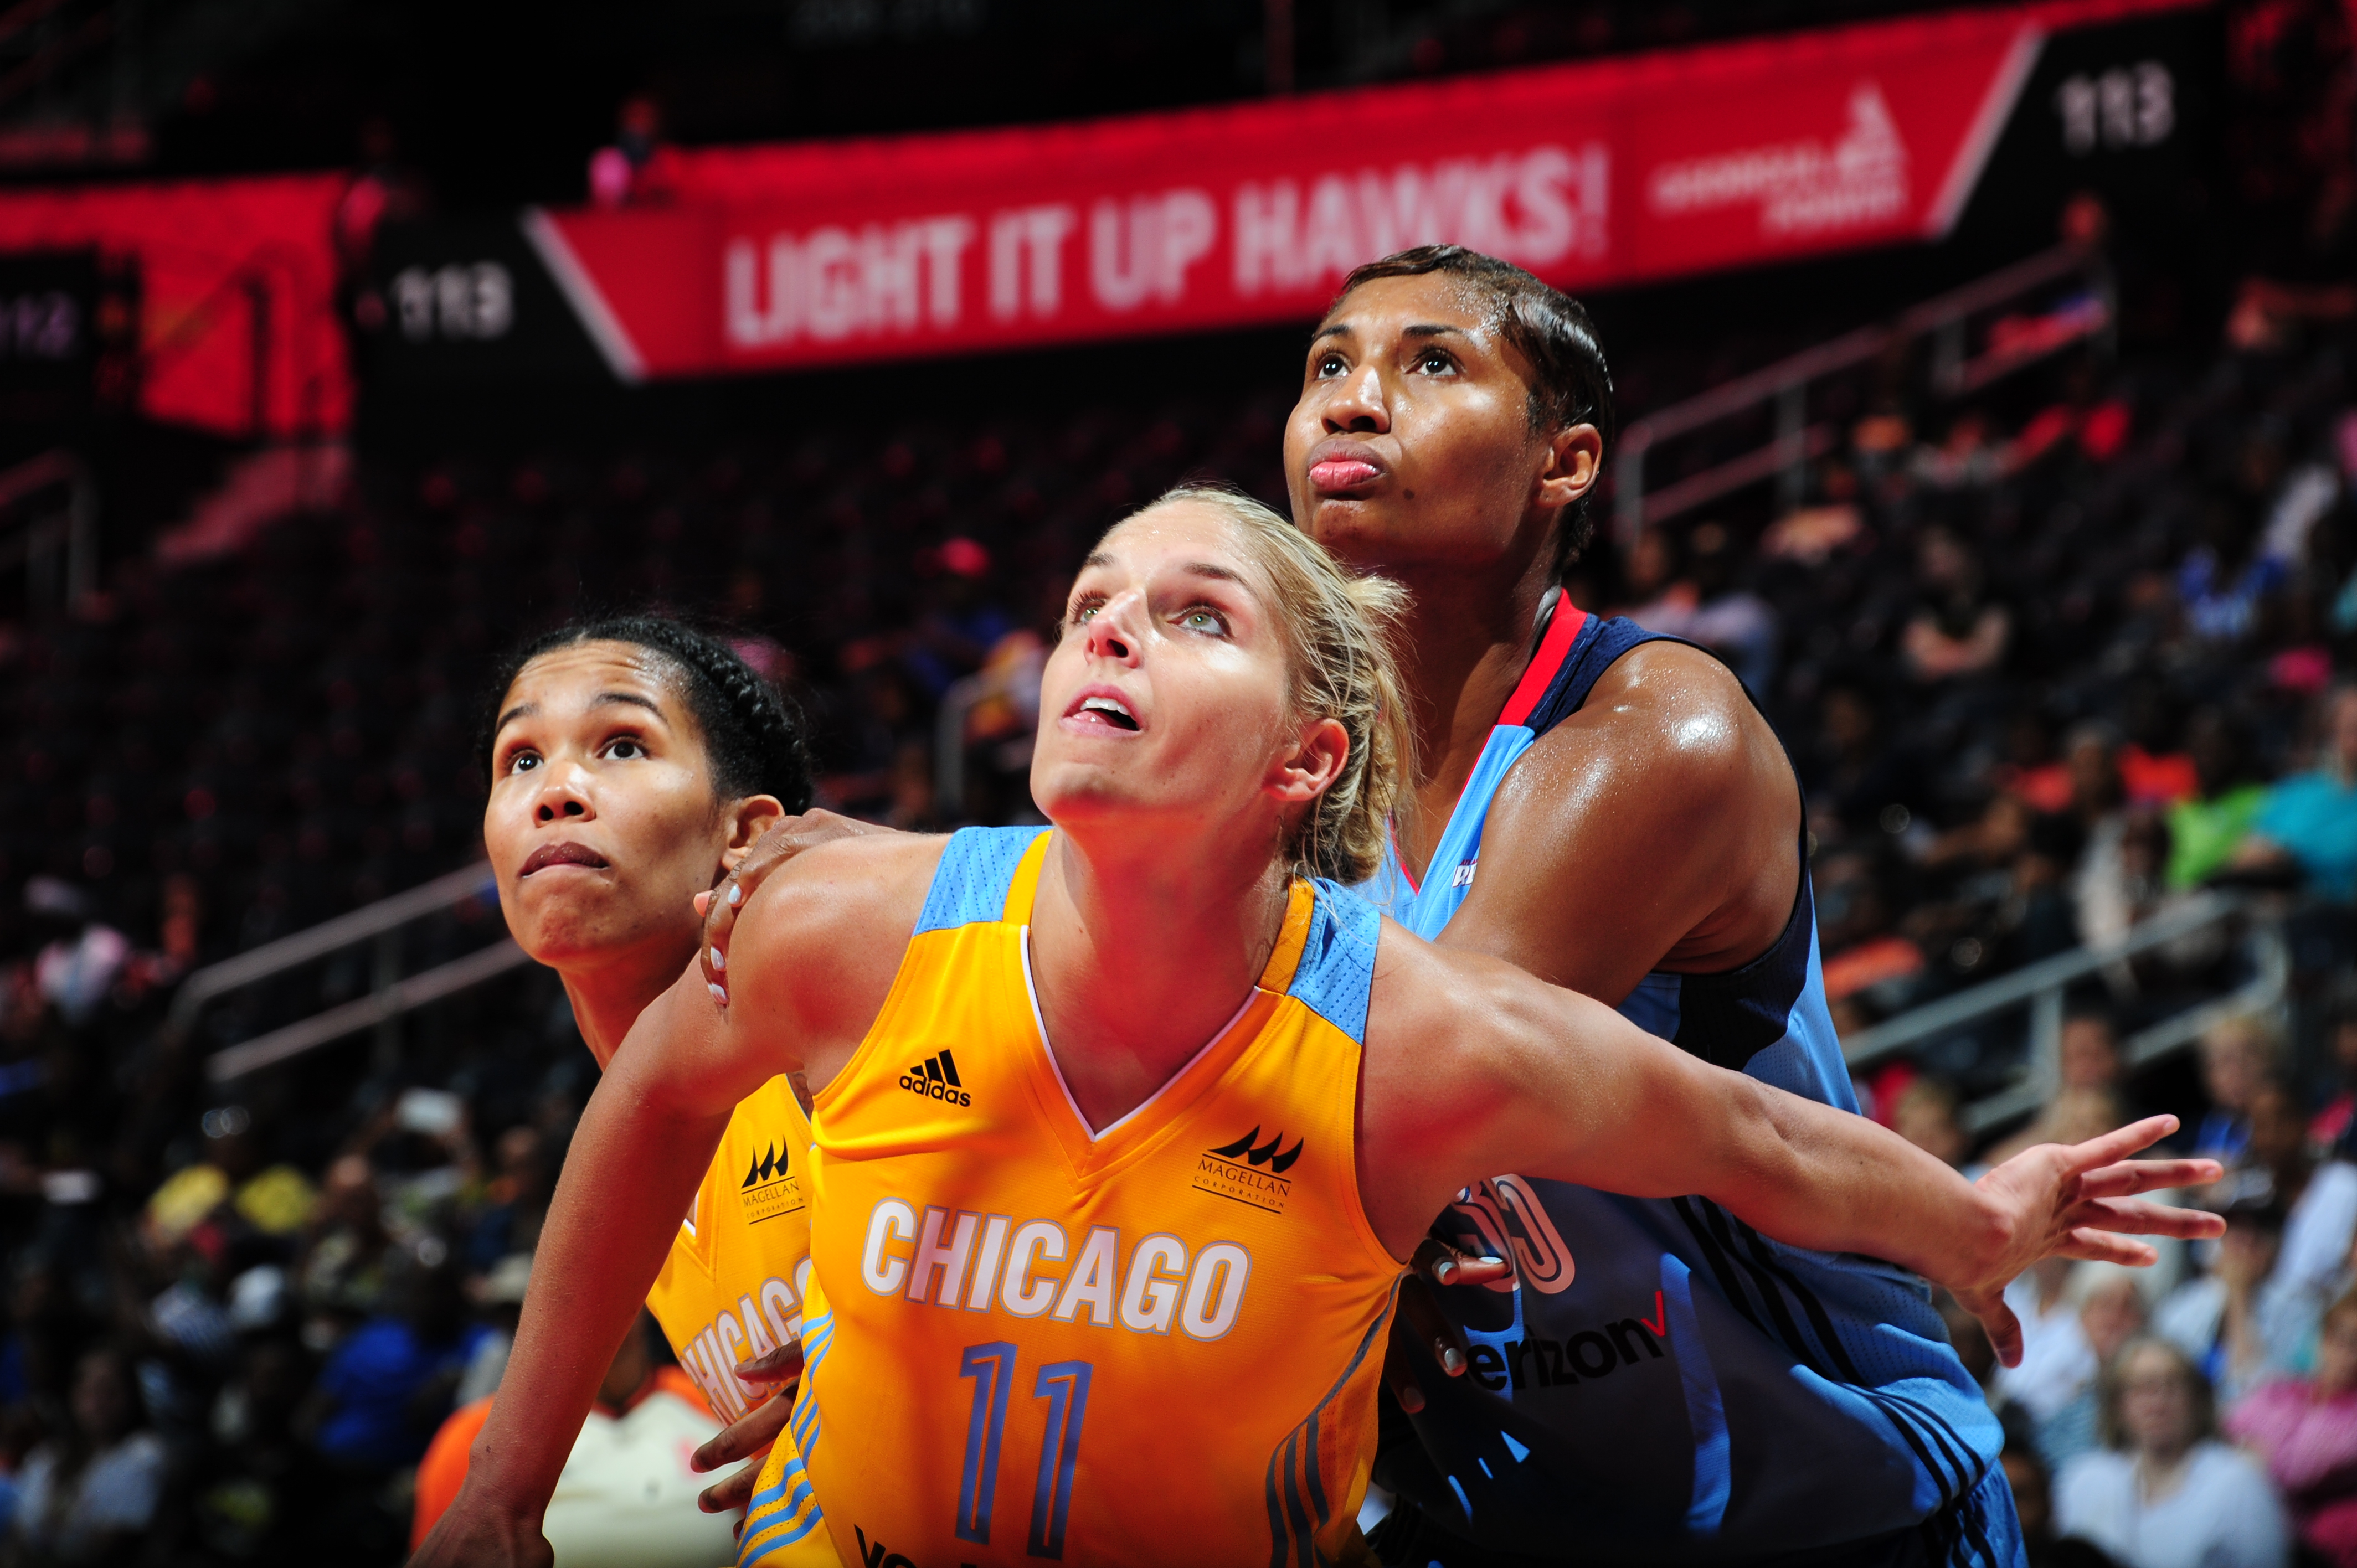 ATLANTA, GA - JUNE 17: Elena Delle Donne #11 of the Chicago Sky fights for position against Angel McCoughtry #35 of the Atlanta Dream on June 17, 2016 at Philips Arena in Atlanta, Georgia. NOTE TO USER: User expressly acknowledges and agrees that, by downloading and/or using this Photograph, user is consenting to the terms and conditions of the Getty Images License Agreement. Mandatory Copyright Notice: Copyright 2016 NBAE (Photo by Scott Cunningham/NBAE via Getty Images)